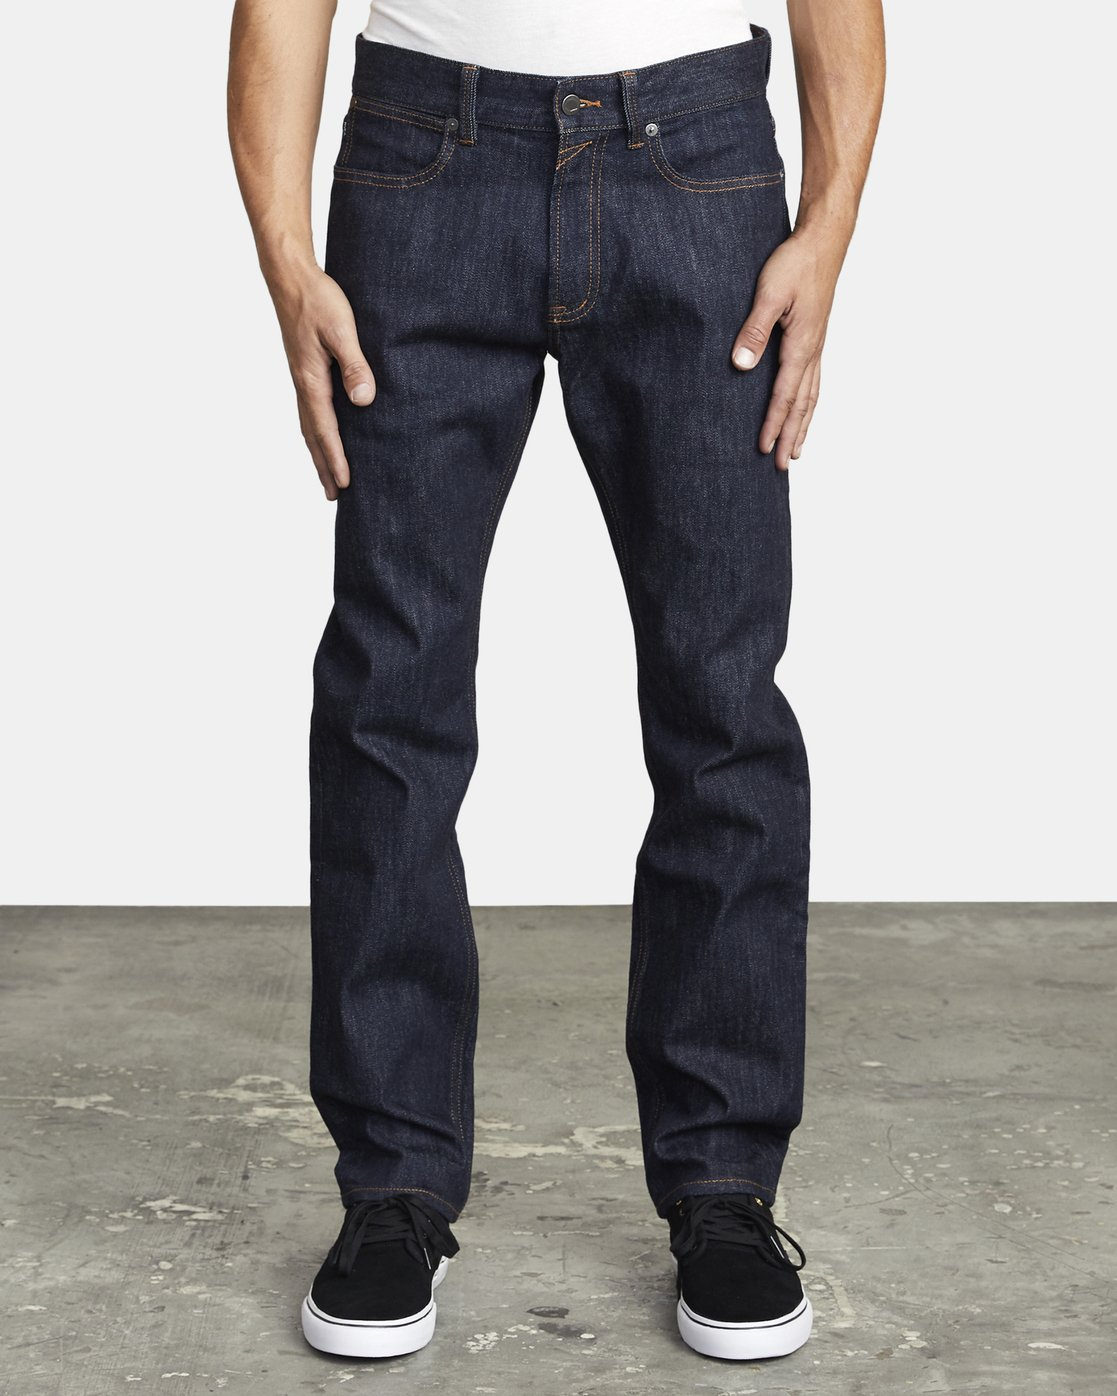 0 WEEKEND STRAIGHT FIT DENIM Blue M3043RWK RVCA